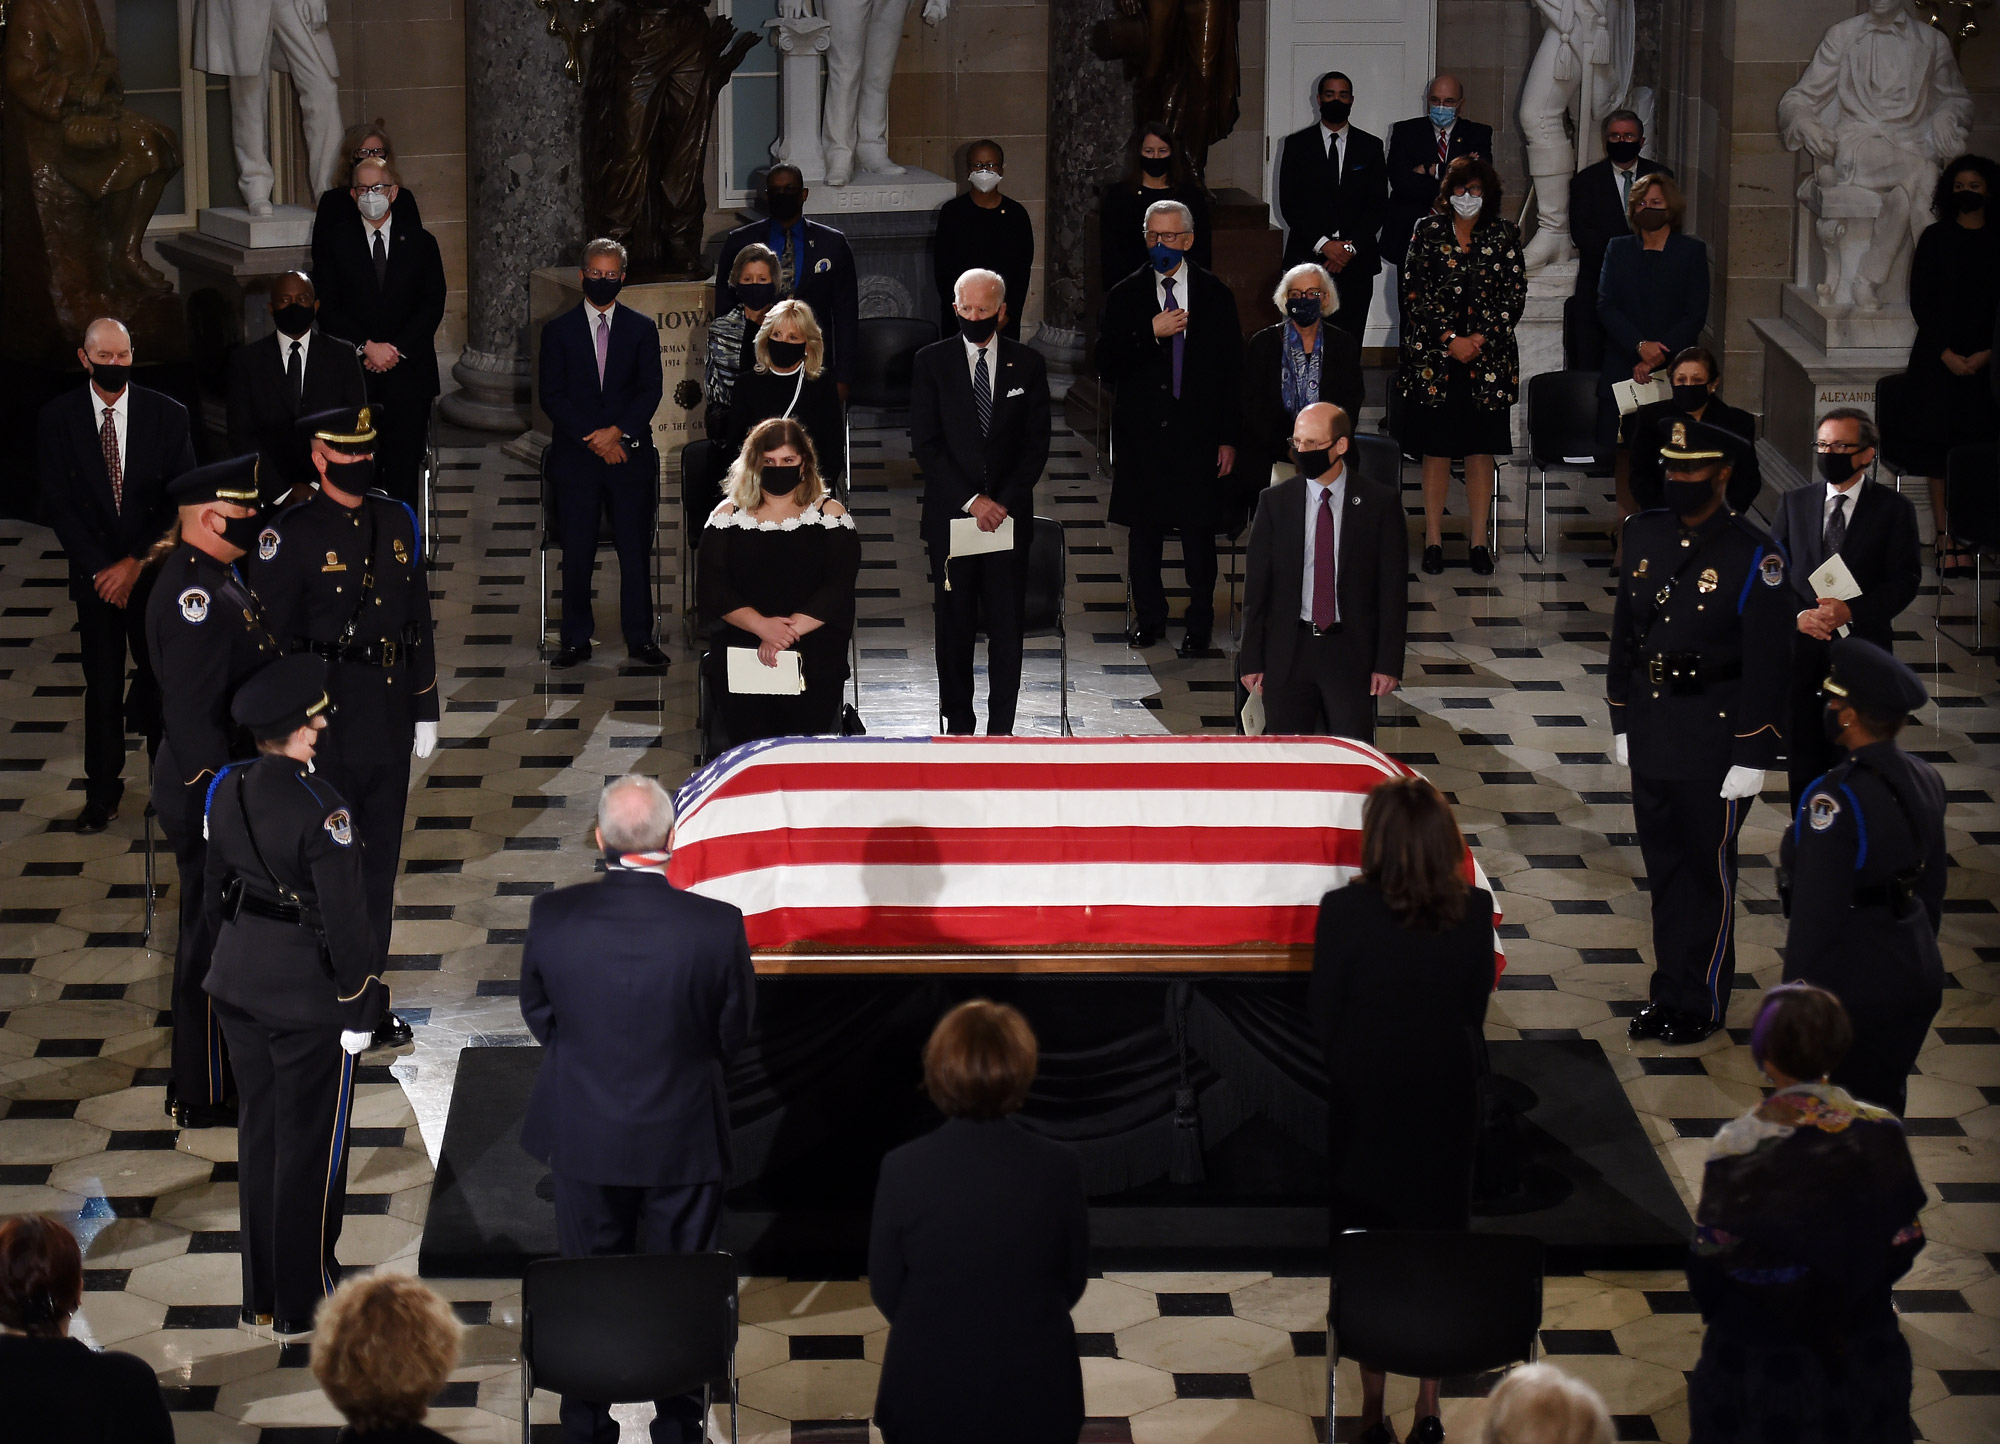 Members of Congress and guests pay their respects to the late Associate Justice Ruth Bader Ginsburg as her casket lies in state during a memorial service in her honor in the Statuary Hall at the US Capitol in Washington, DC, on September 25.